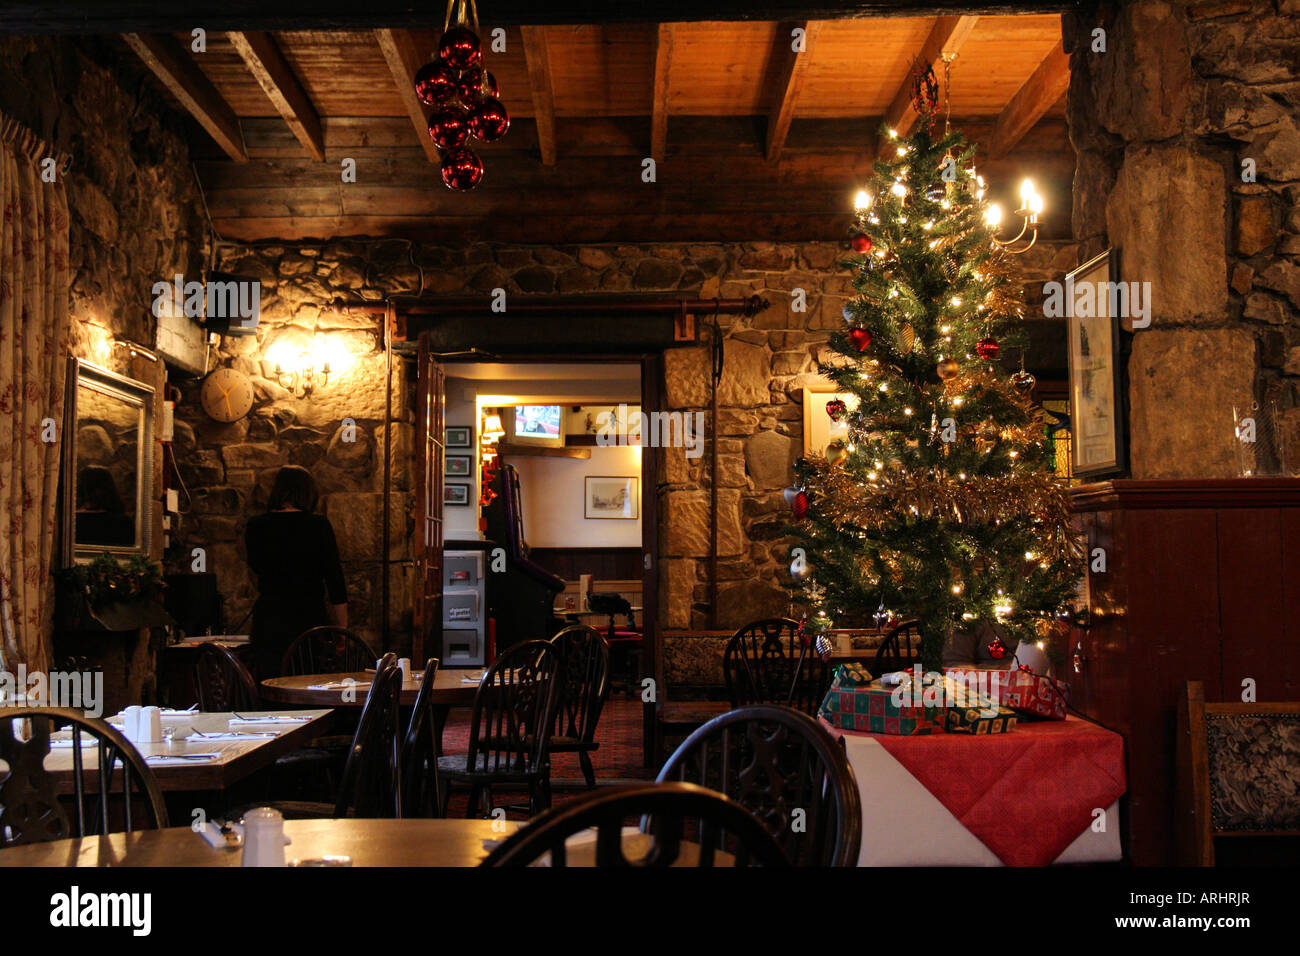 christmas decorations in a scottish restaurant stock image - Restaurant Christmas Decorations